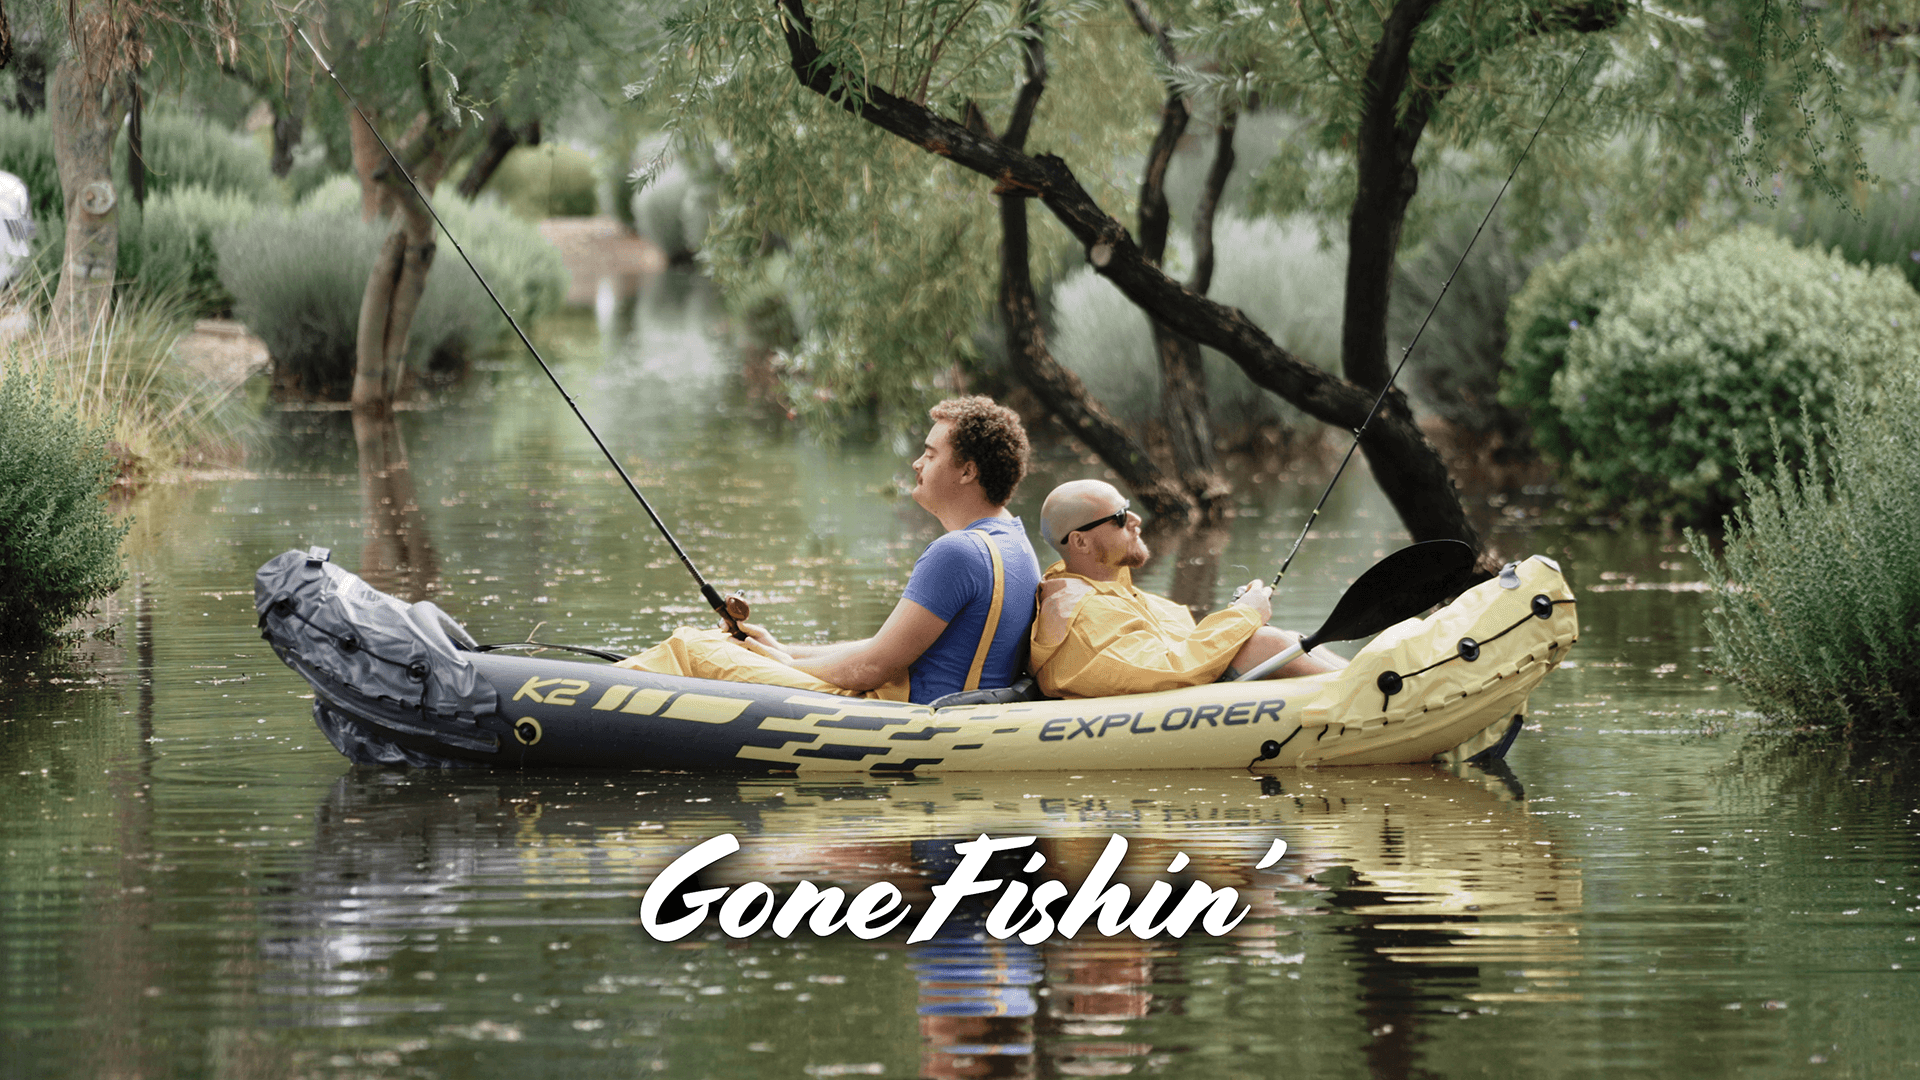 Gone Fishin' | #FunnyFriday